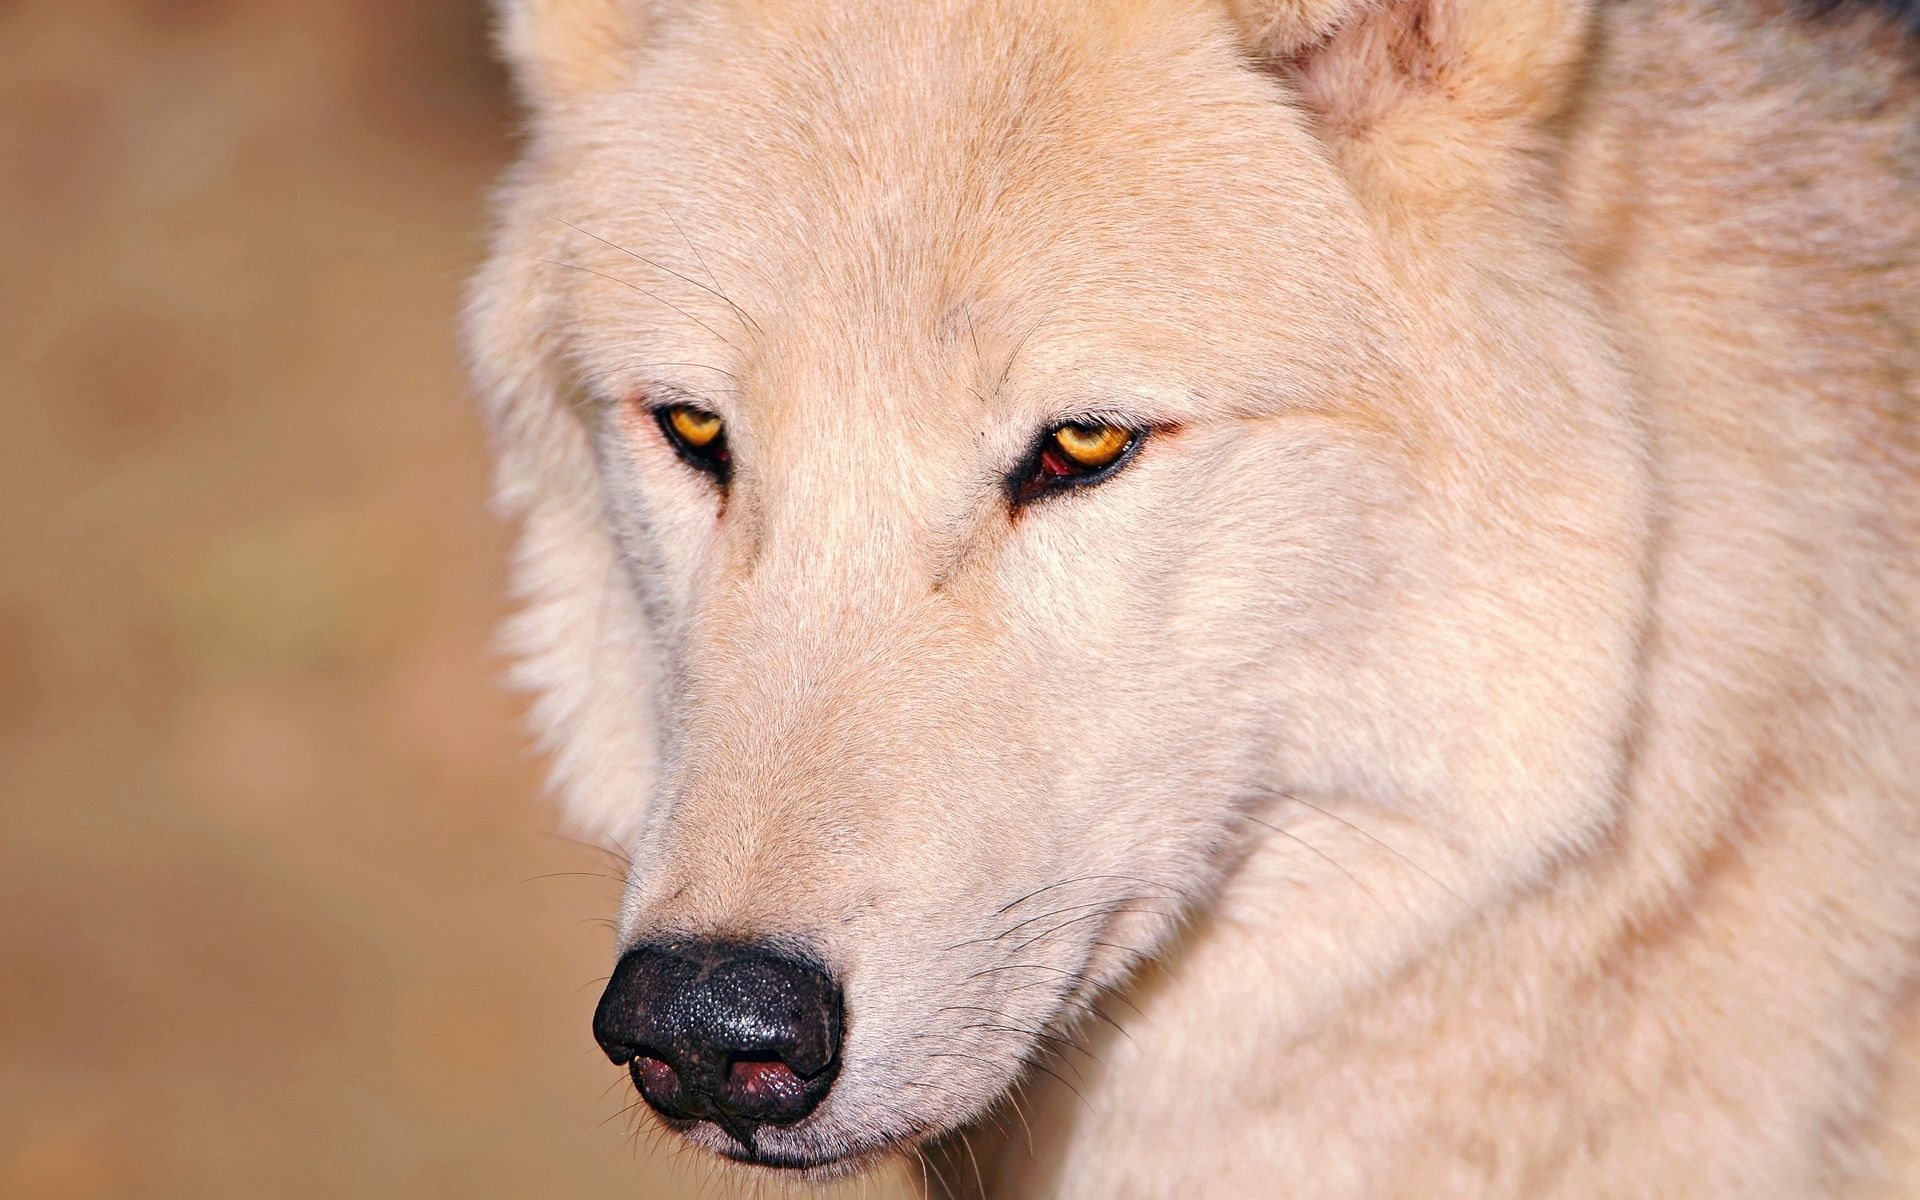 107352 download wallpaper Animals, Wolf, Eyes, Nose screensavers and pictures for free